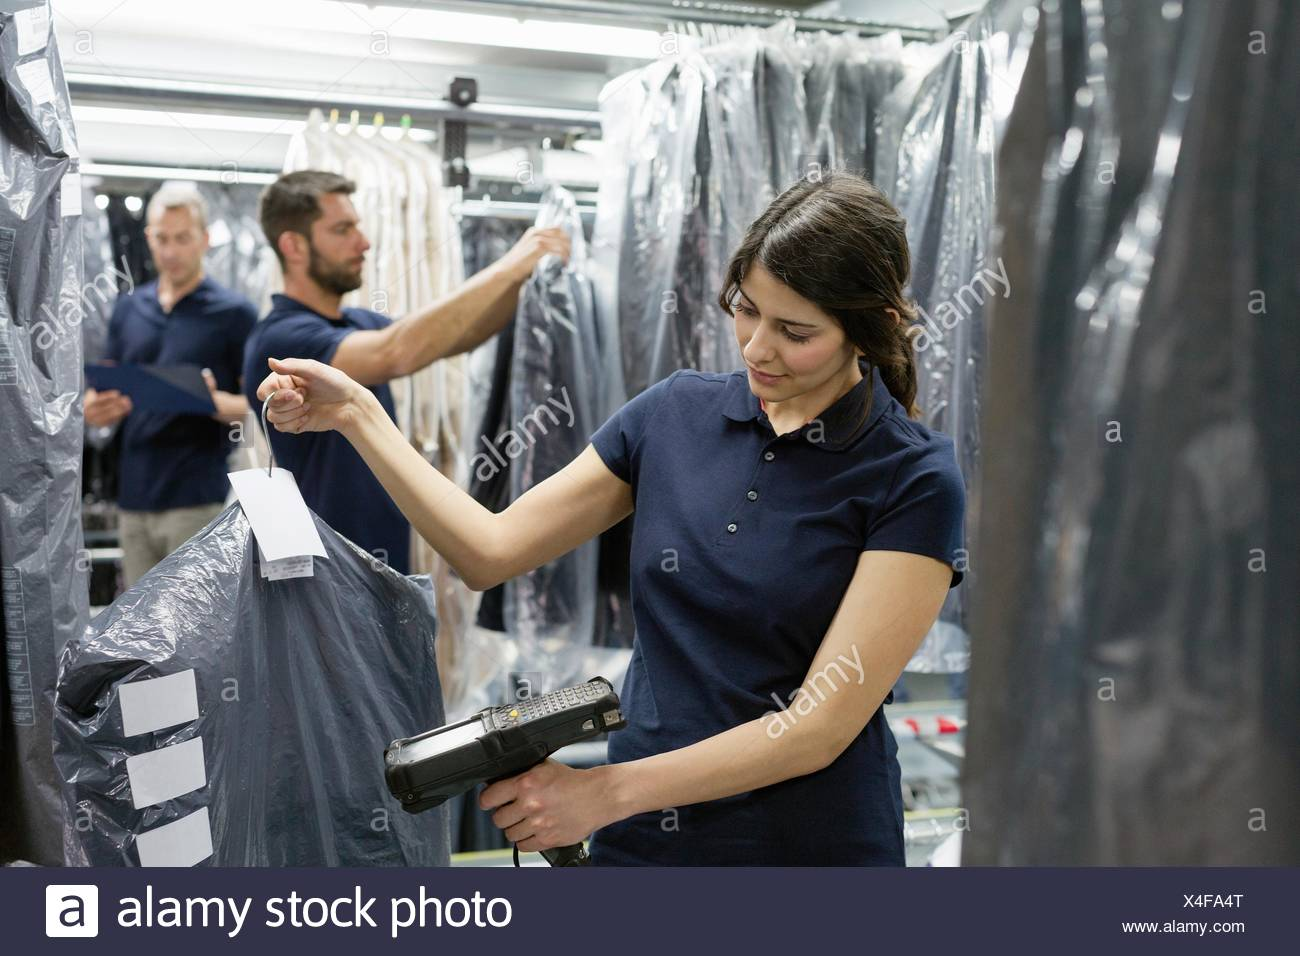 Three warehouse workers doing garment stock take in distribution warehouse - Stock Image